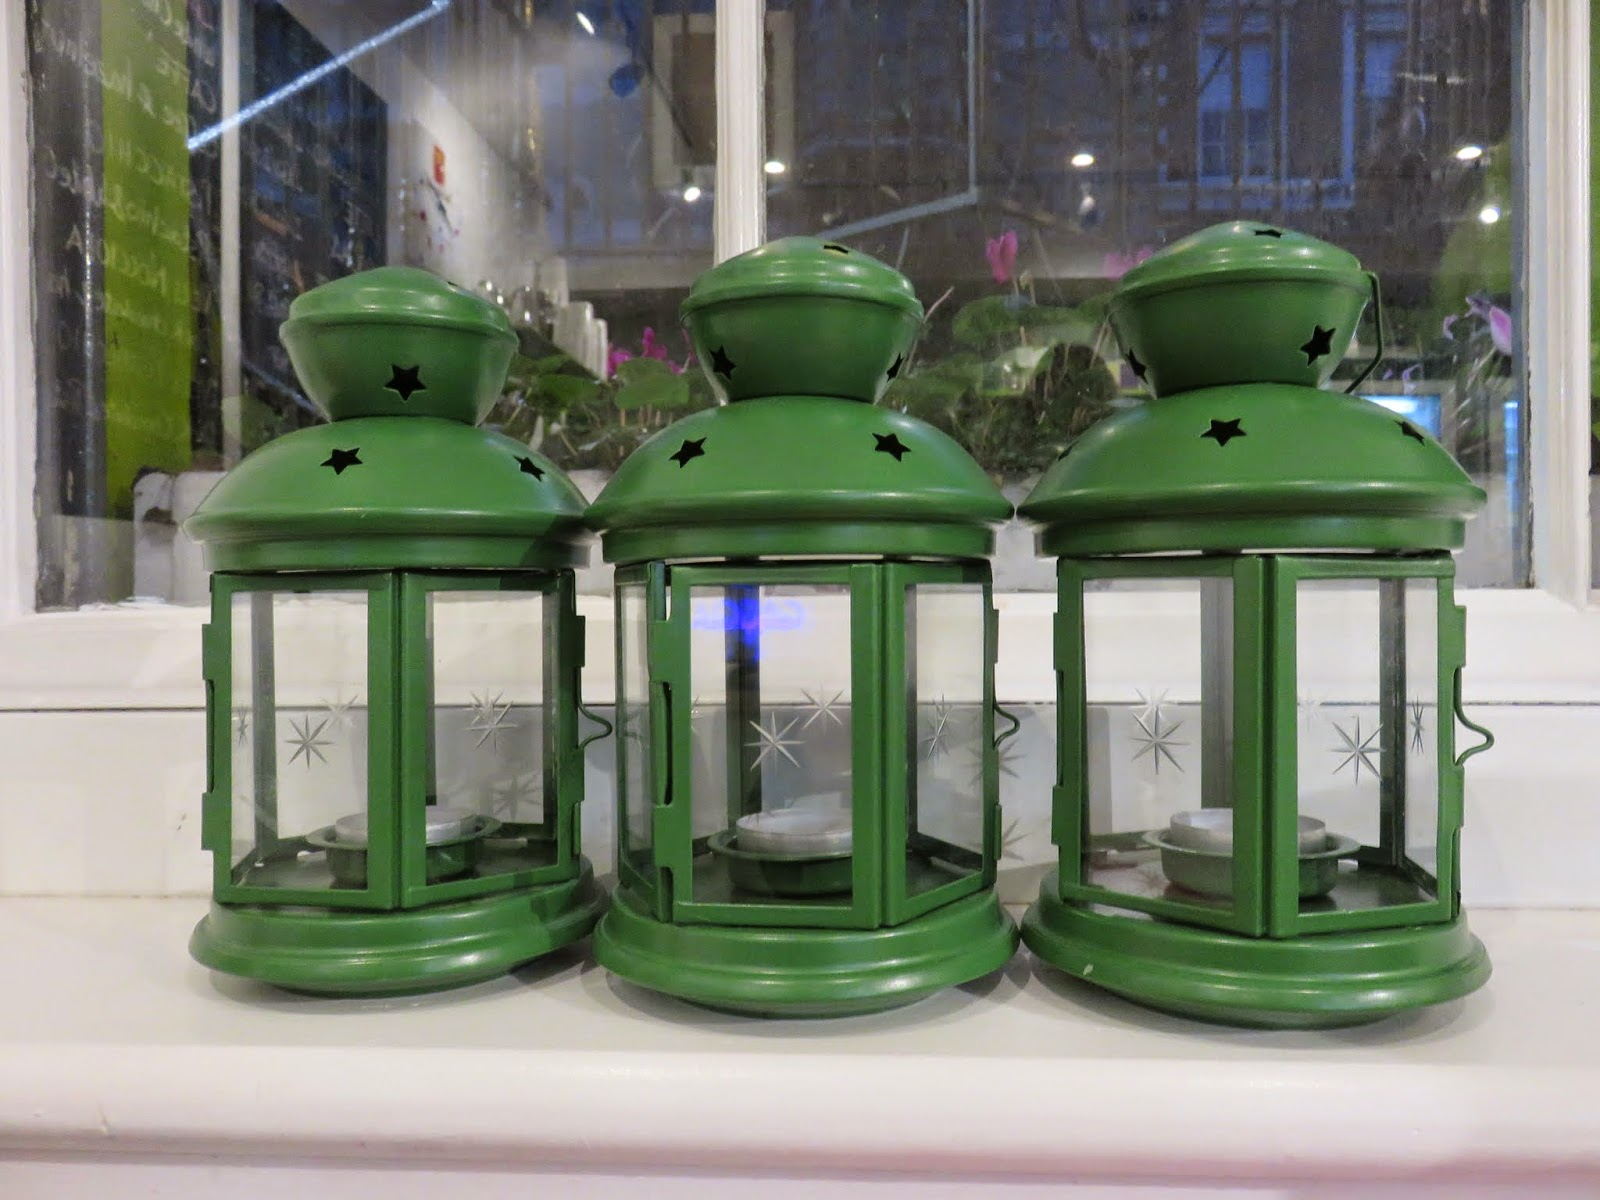 Green lanterns at Sweet Sicily in Dublin